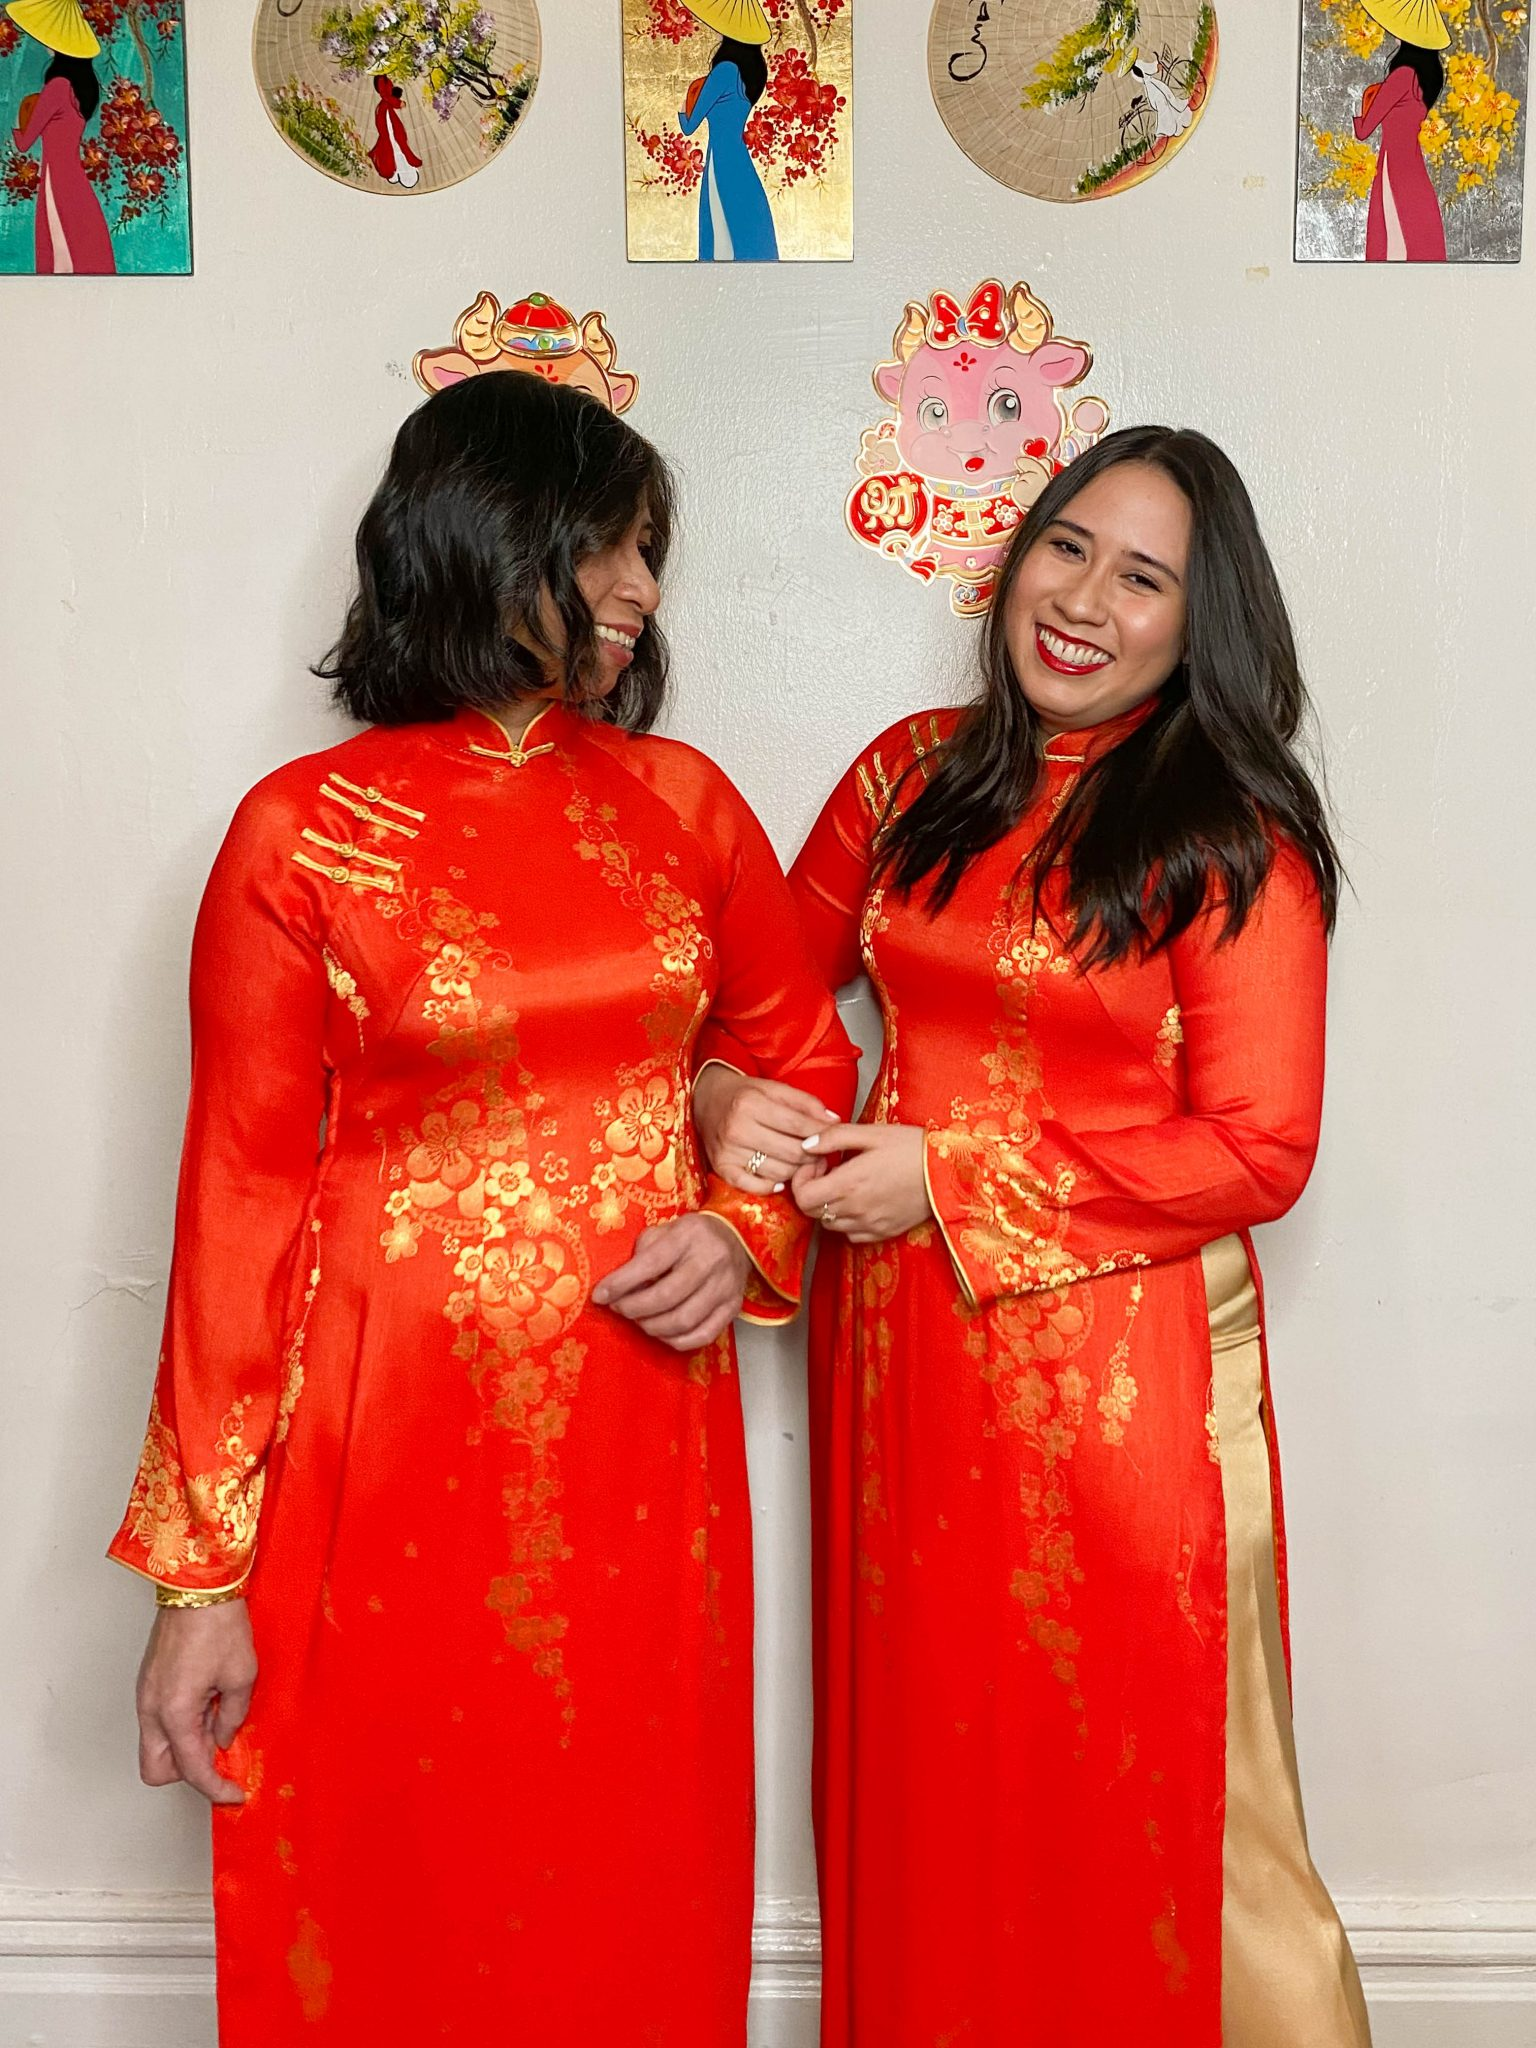 Happy Lunar New Year - Year of the Ox by Basically A Mess (photo of two women in traditional Vietnamese ao dai)